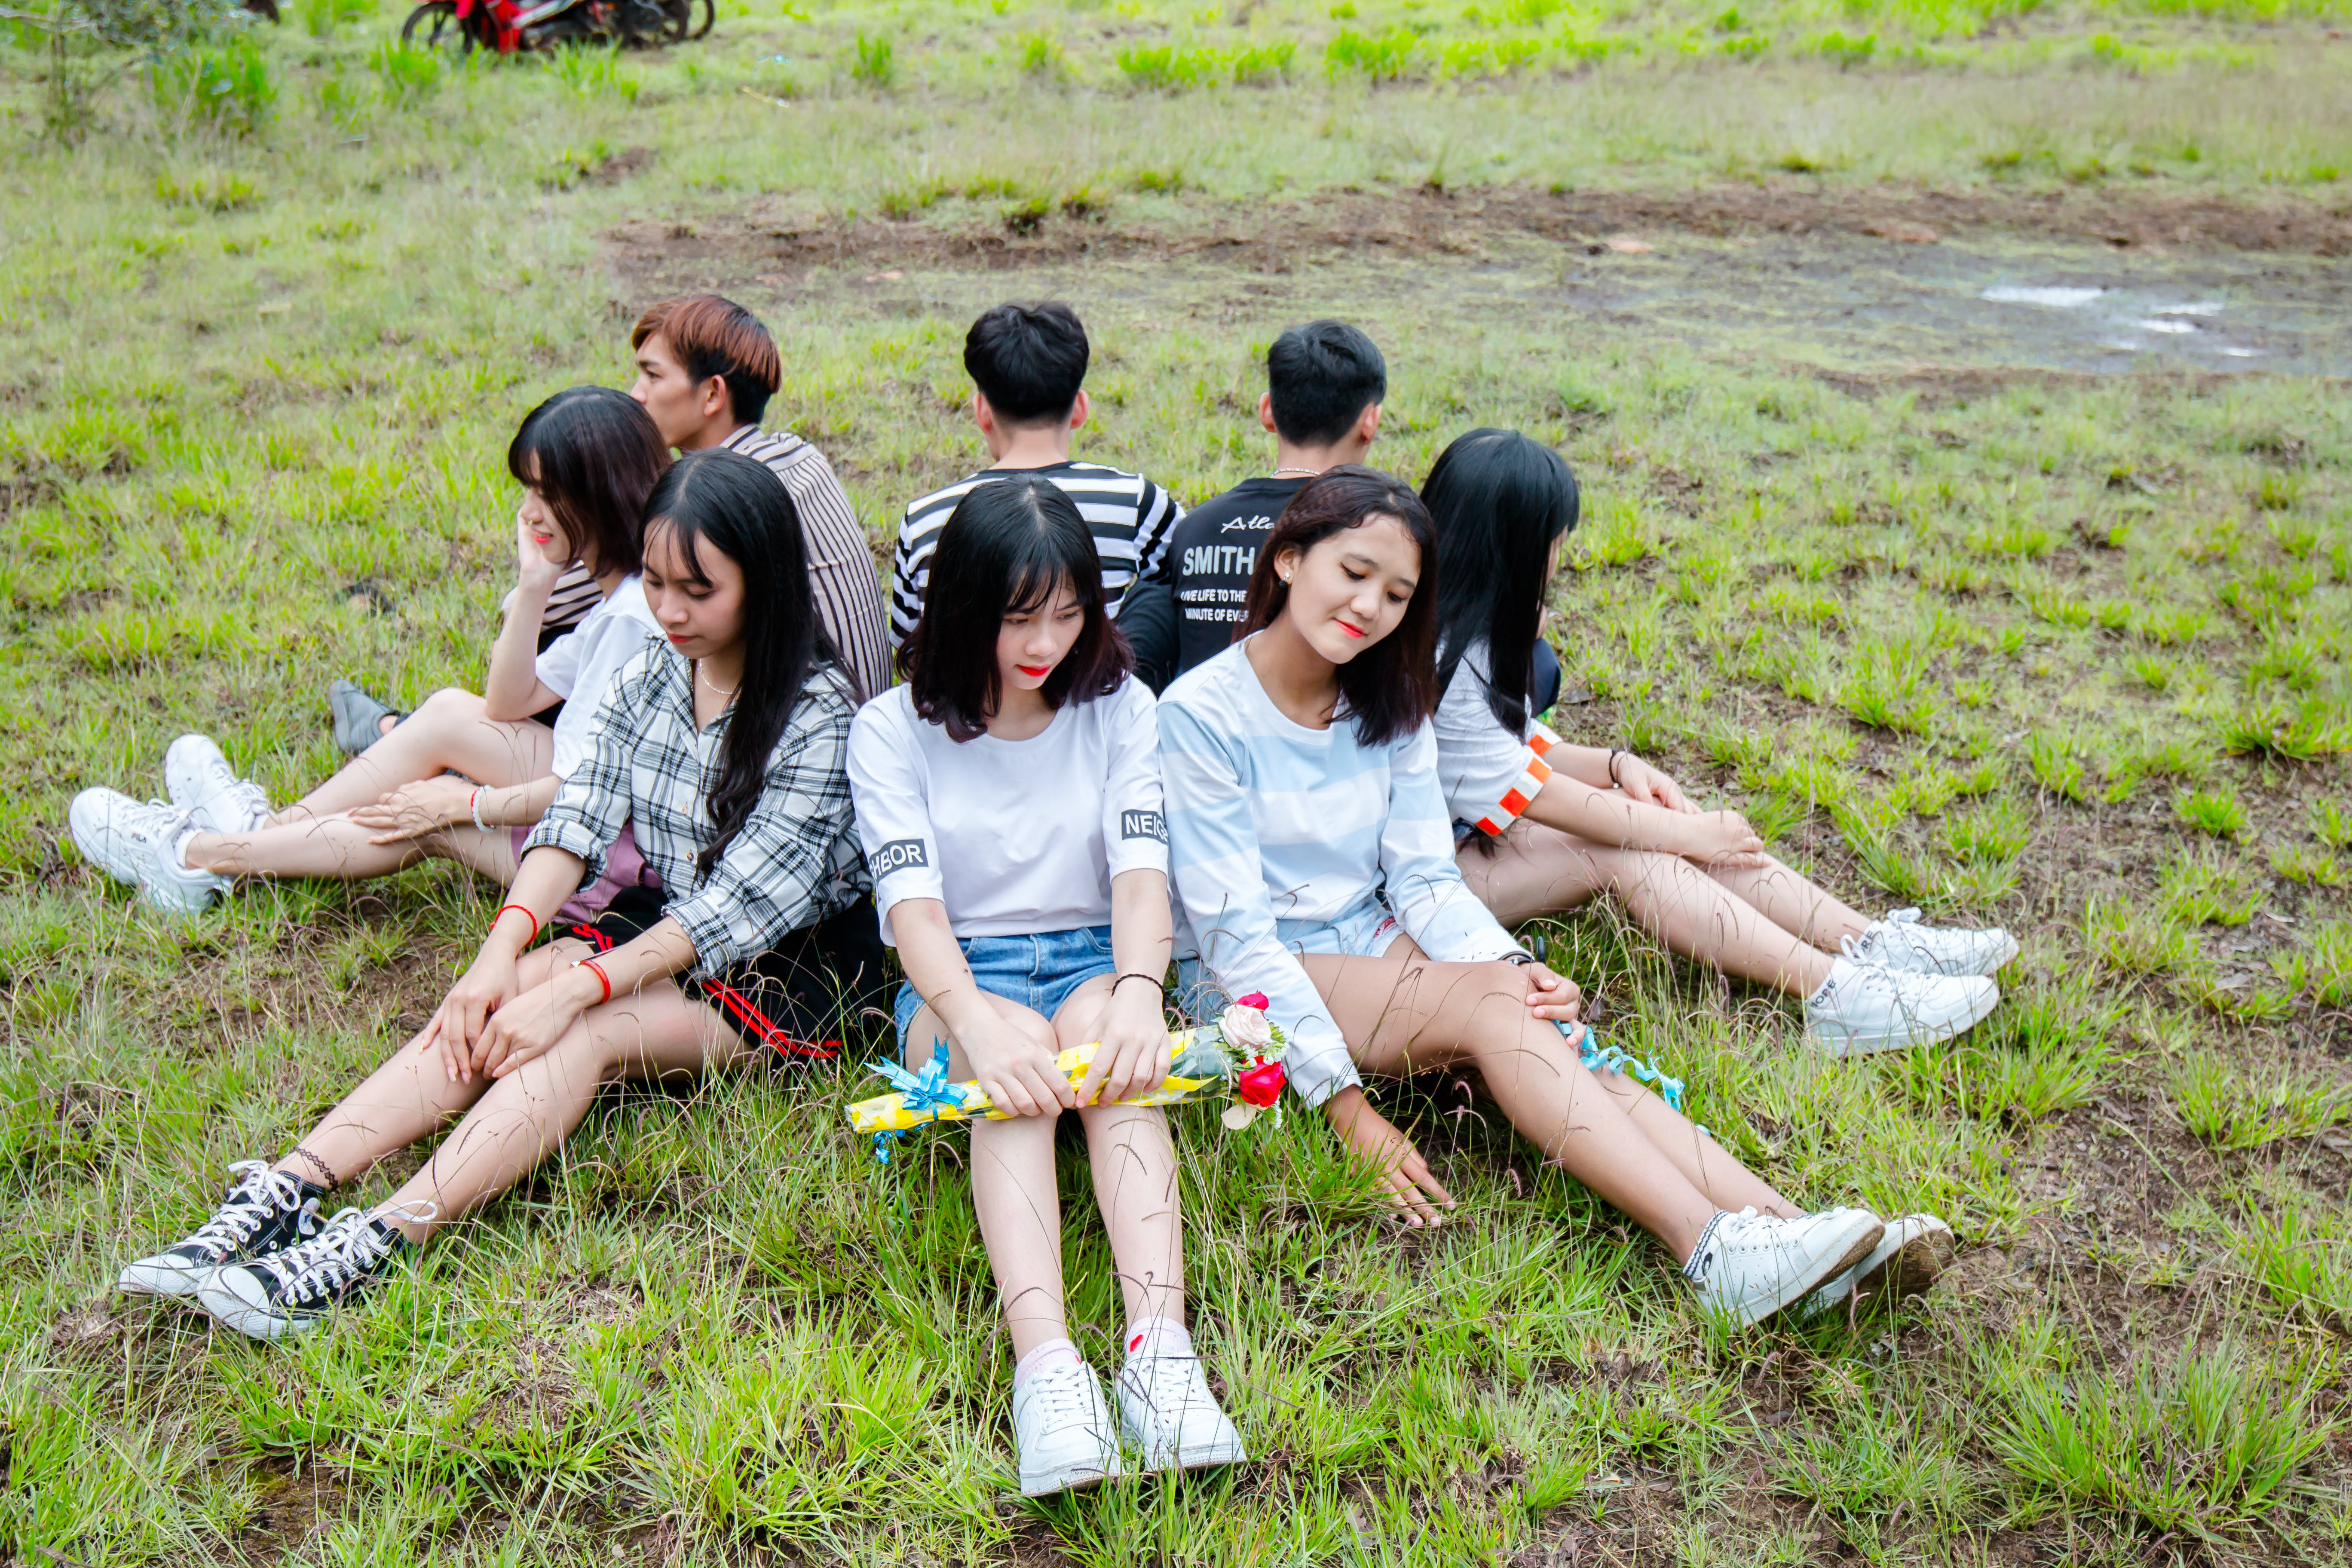 Men and Women Sitting on Grass Forming Circle of Friends